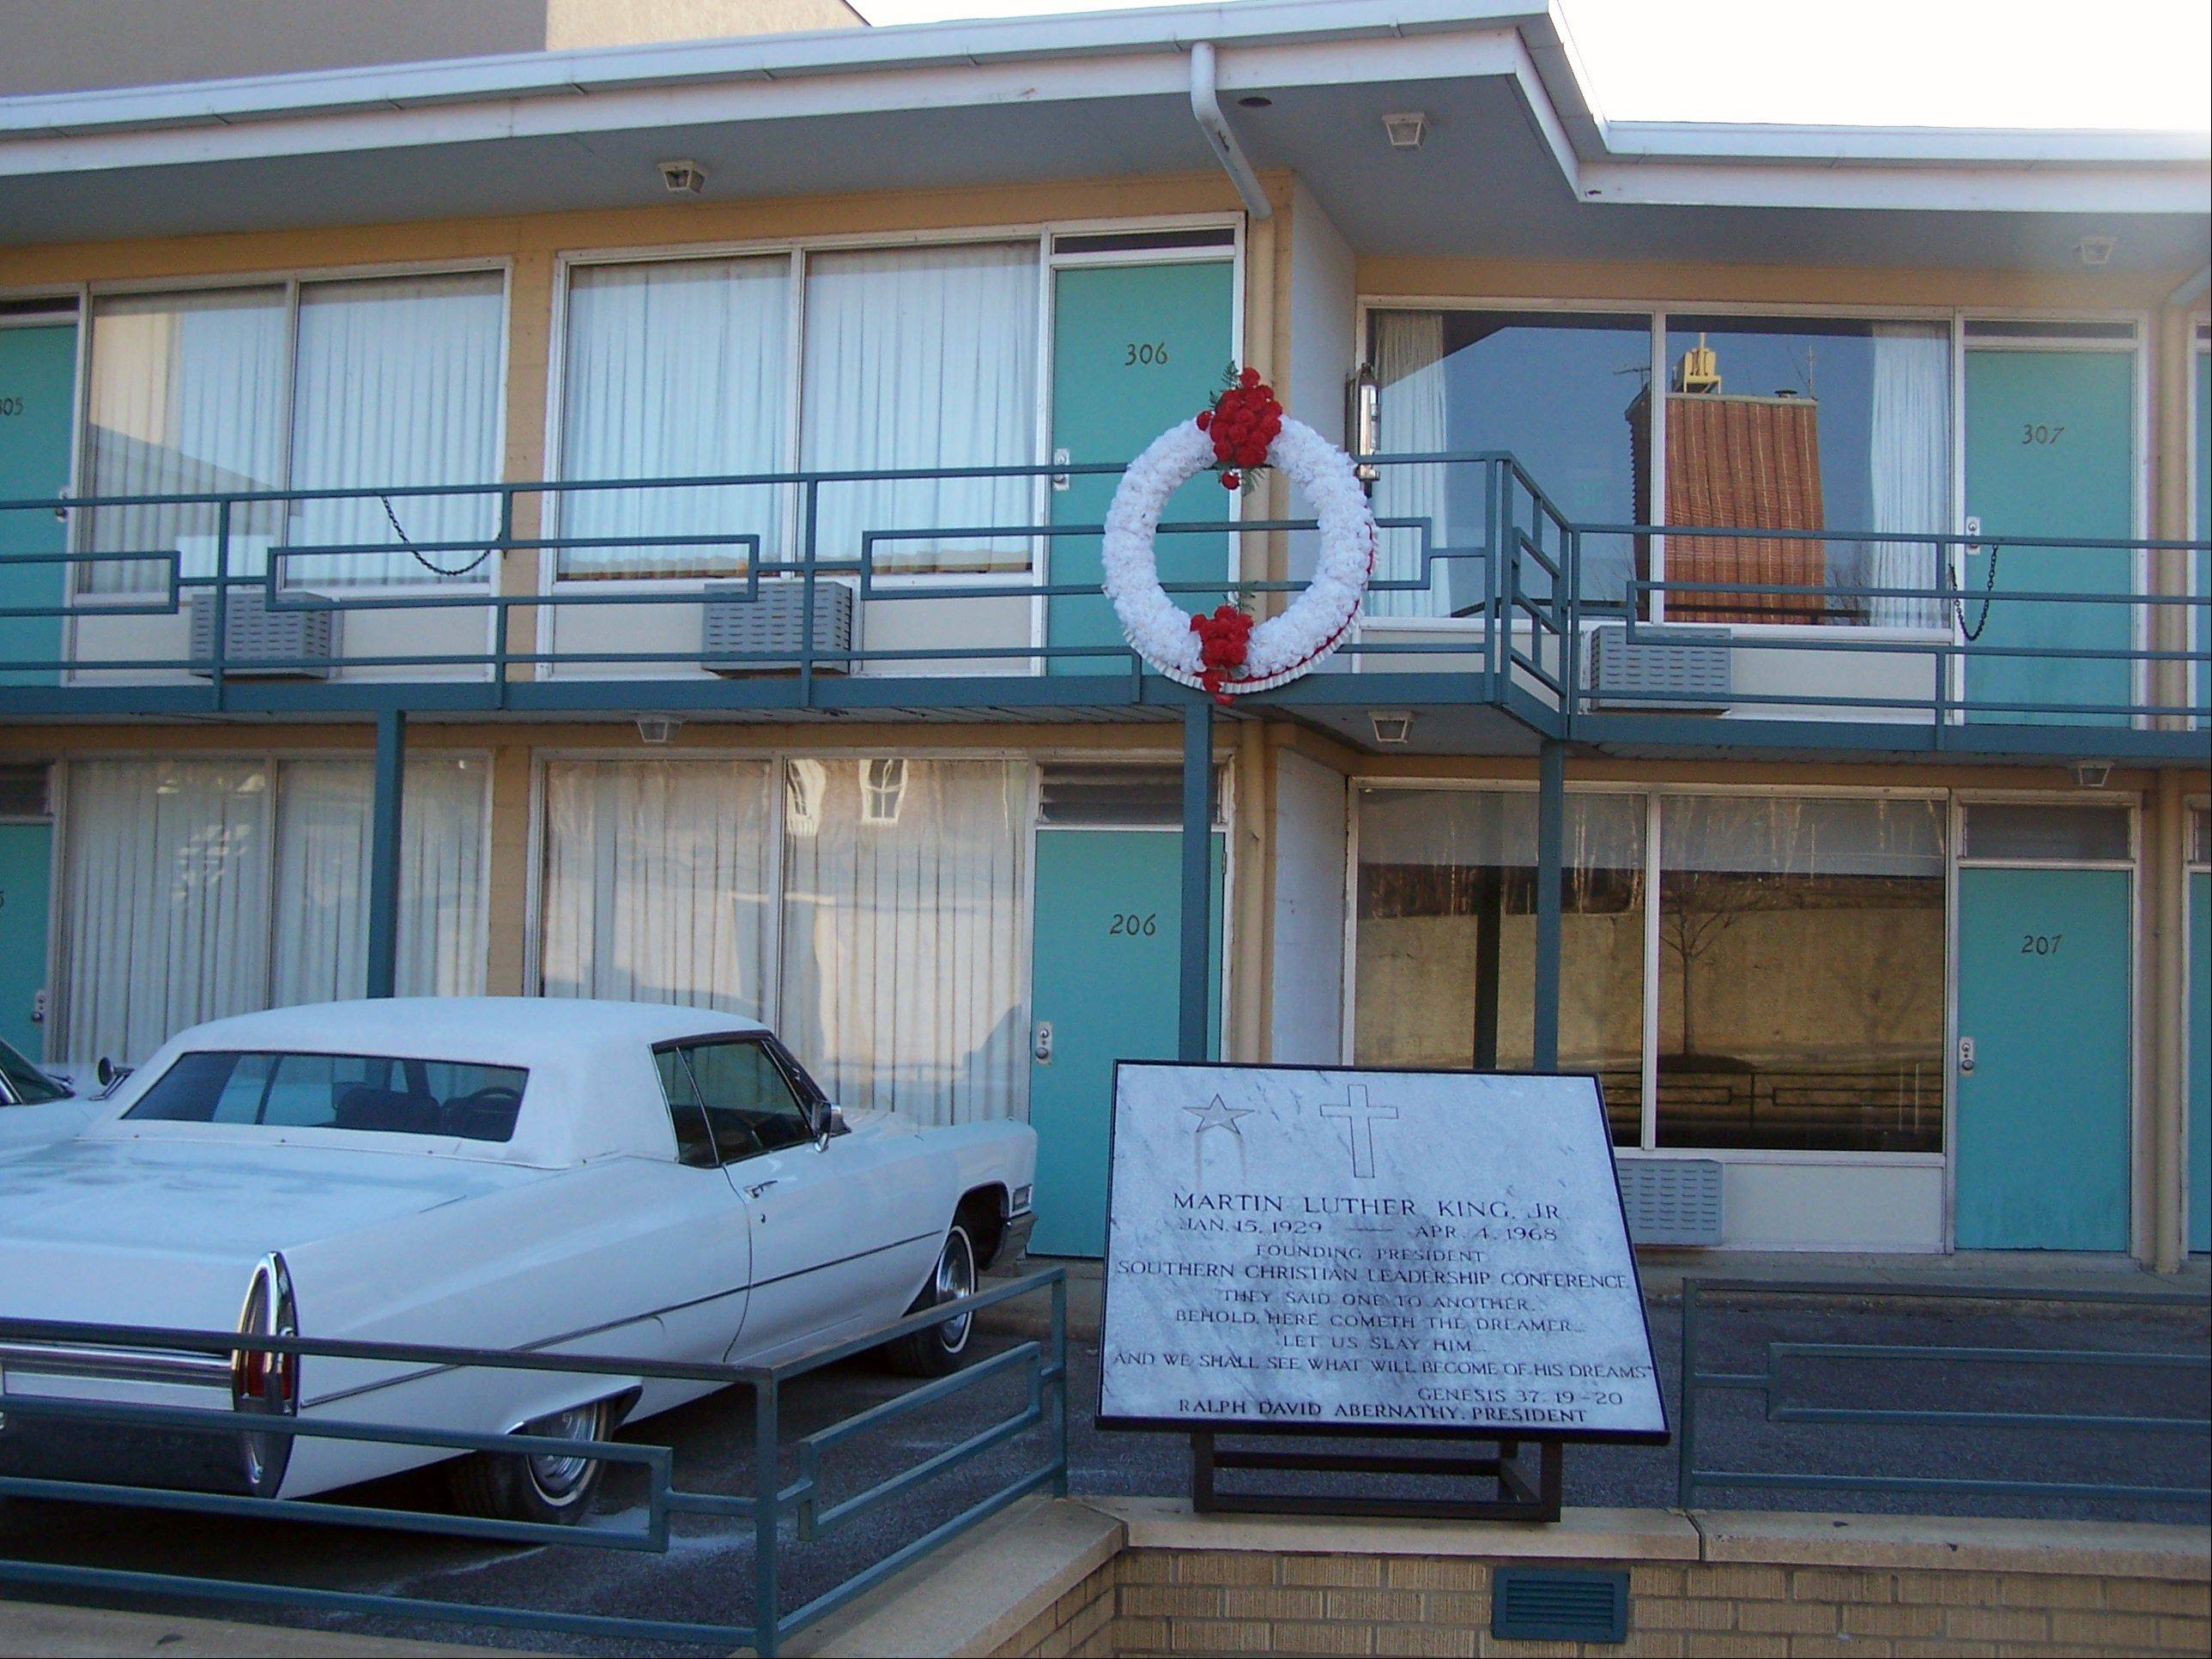 This photo released by the National Civil Rights Museum shows outside of the National Civil Rights Museum which is located at the Lorraine Motel is the assassination site of Dr. Martin Luther King, Jr. The museum chronicles key episodes of the American civil rights movement and the legacy of the movement.